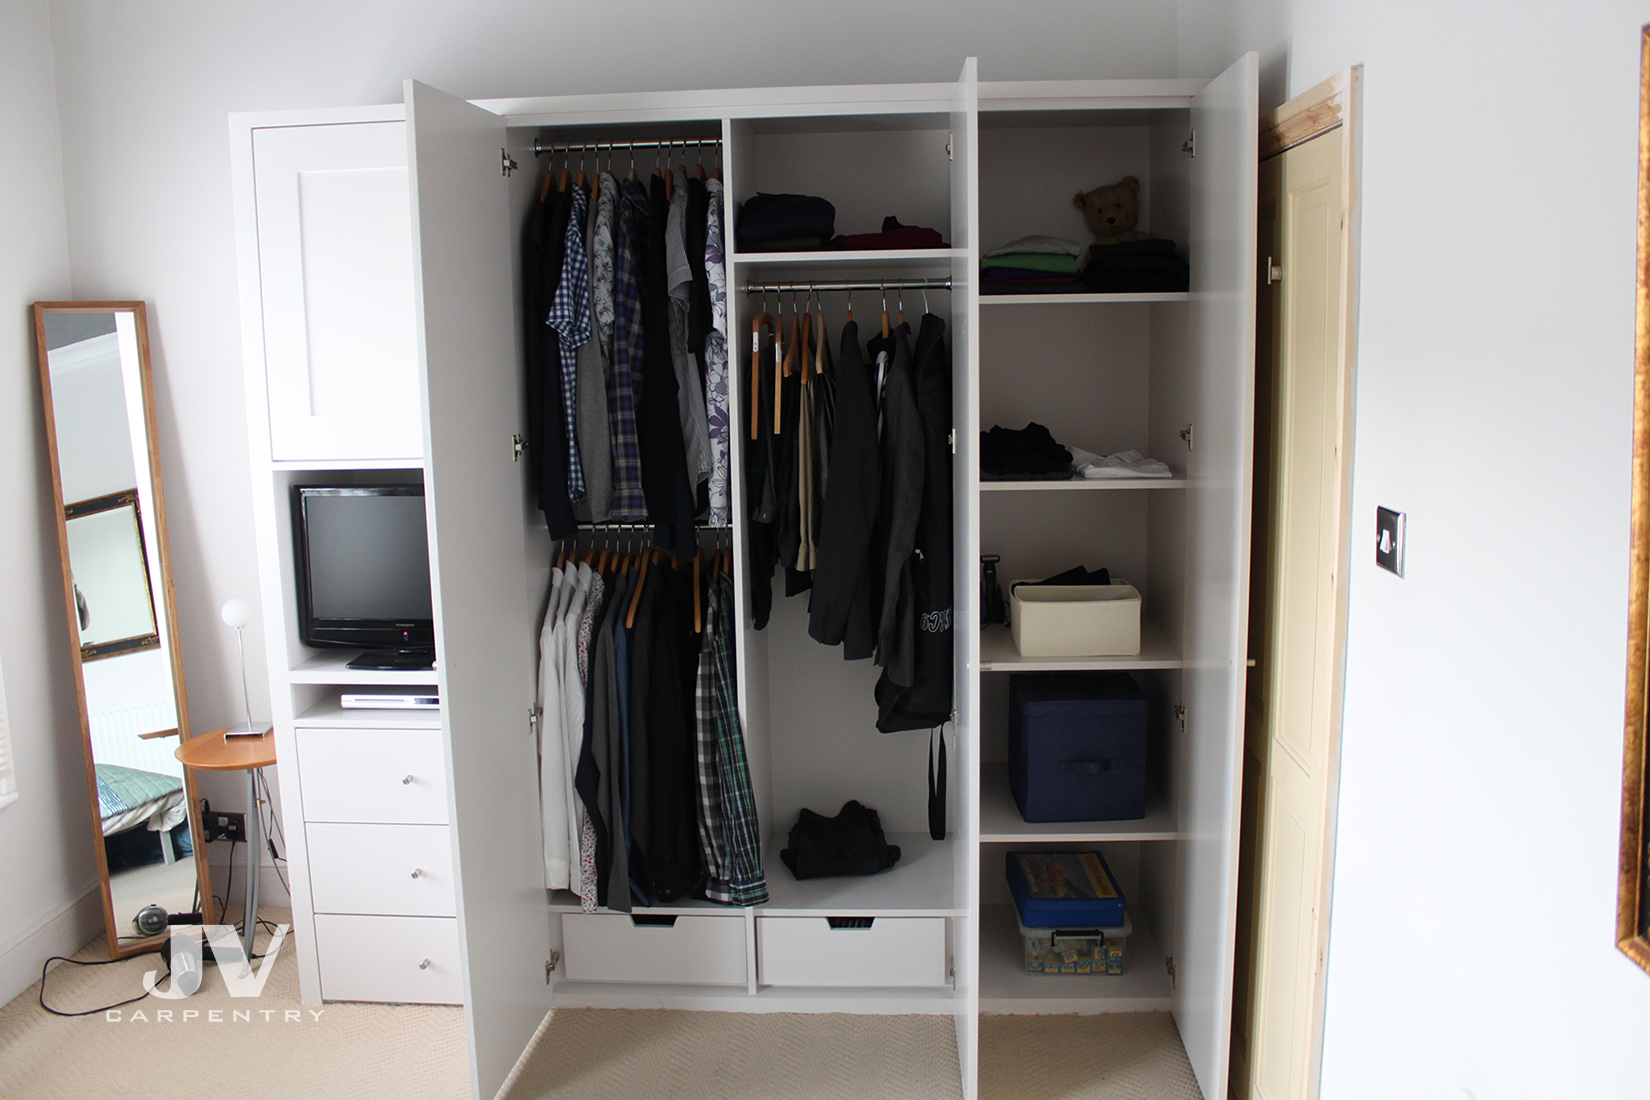 Small Built In Wardrobe Bespoke Fitted Wardrobe Small